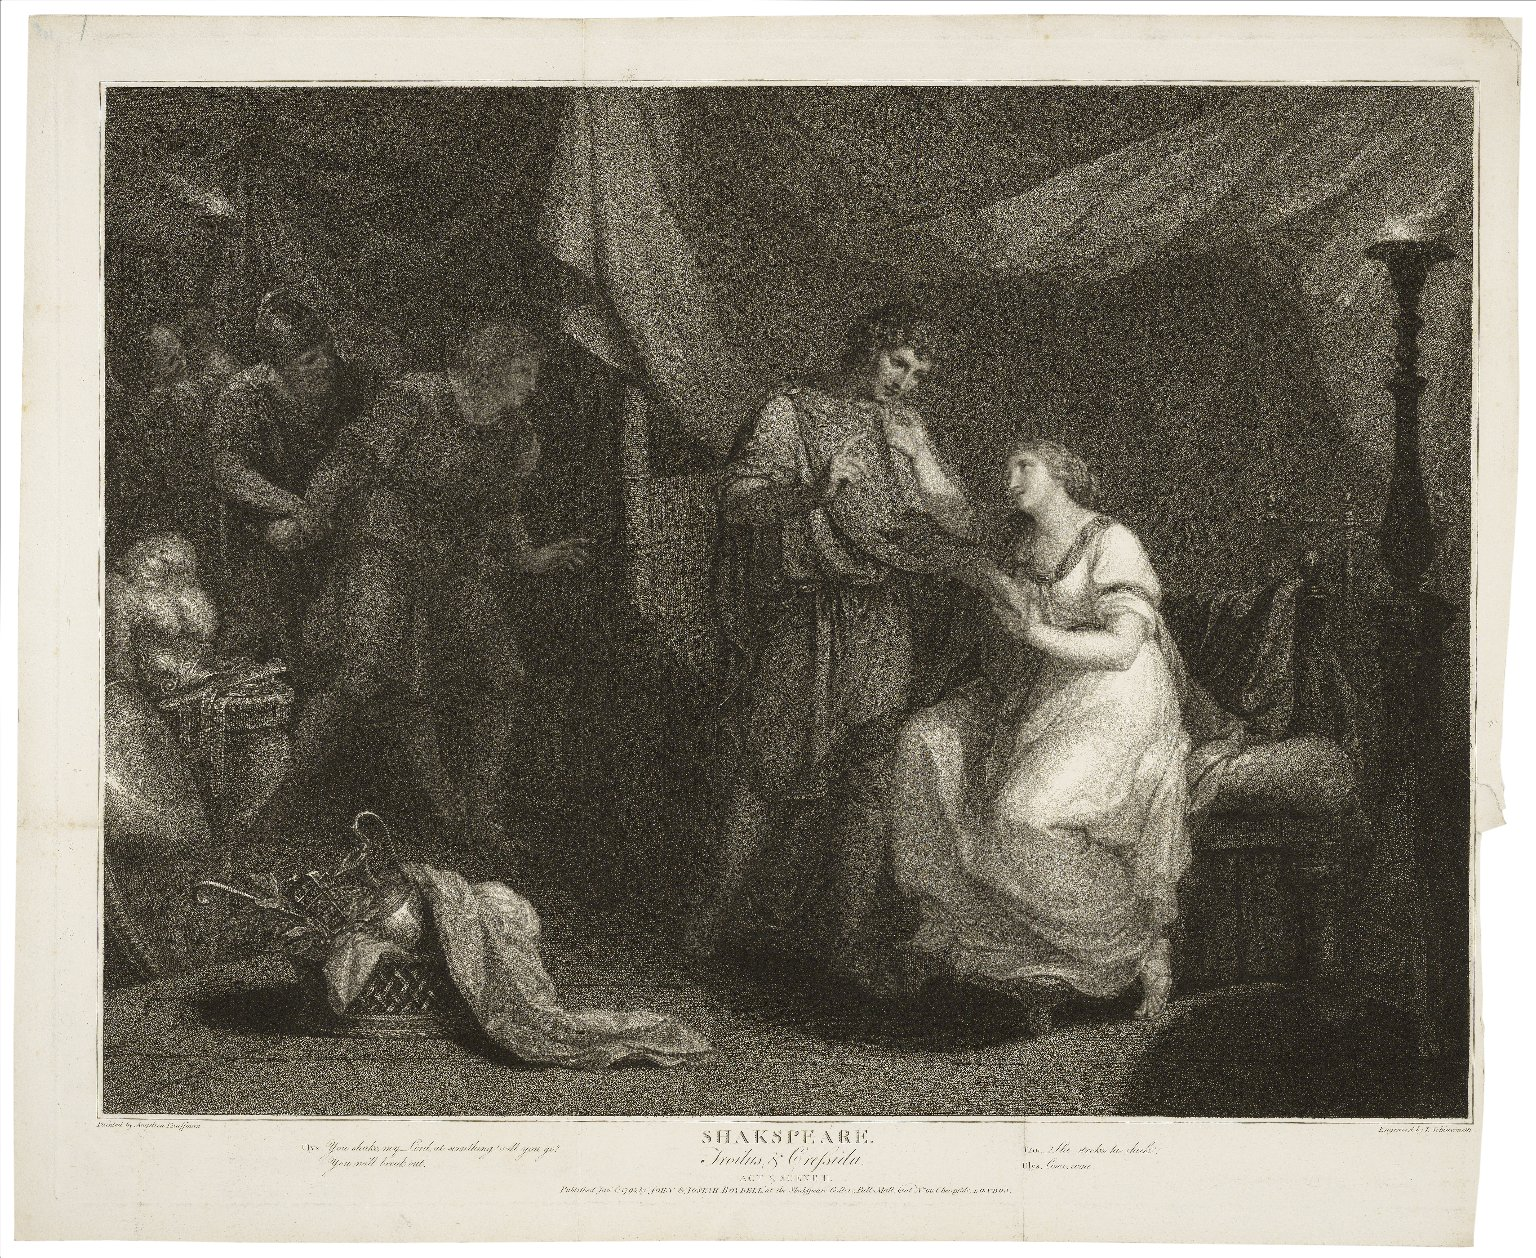 Troilus & Cressida, act V, scene II ... [graphic] / painted by Angelica Kauffman [sic] ; engraved by L. Schiavonetti.